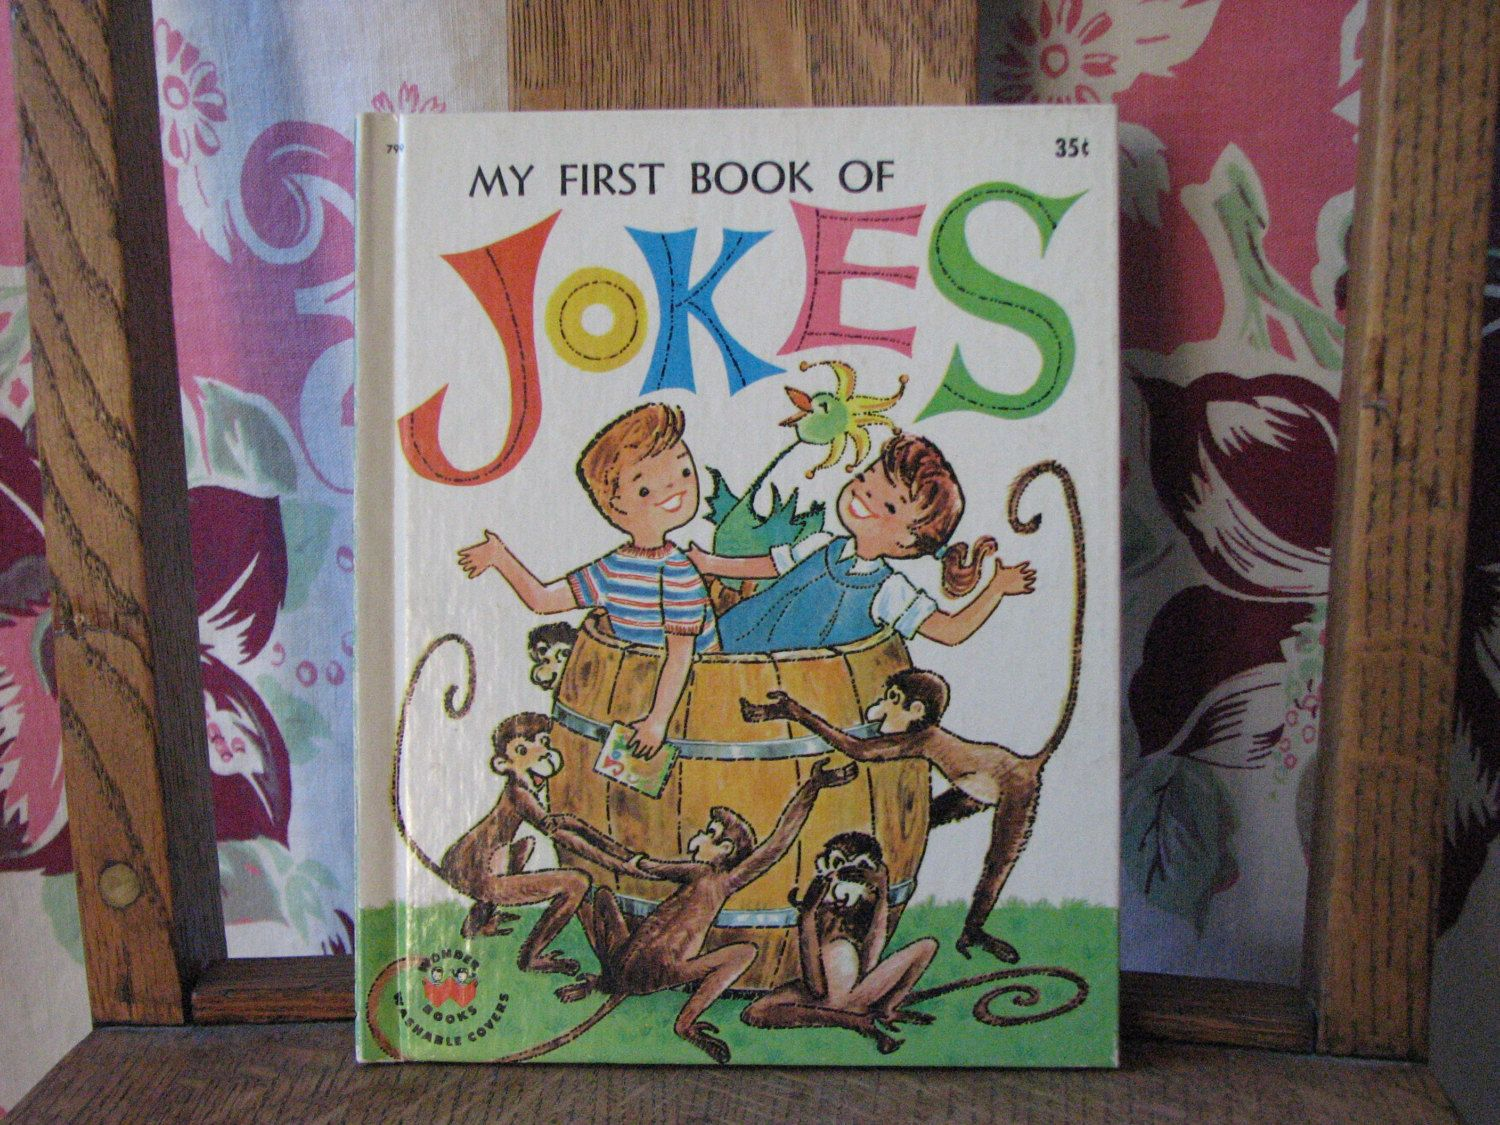 Vintage My First Book of Jokes, copyright 1962, by